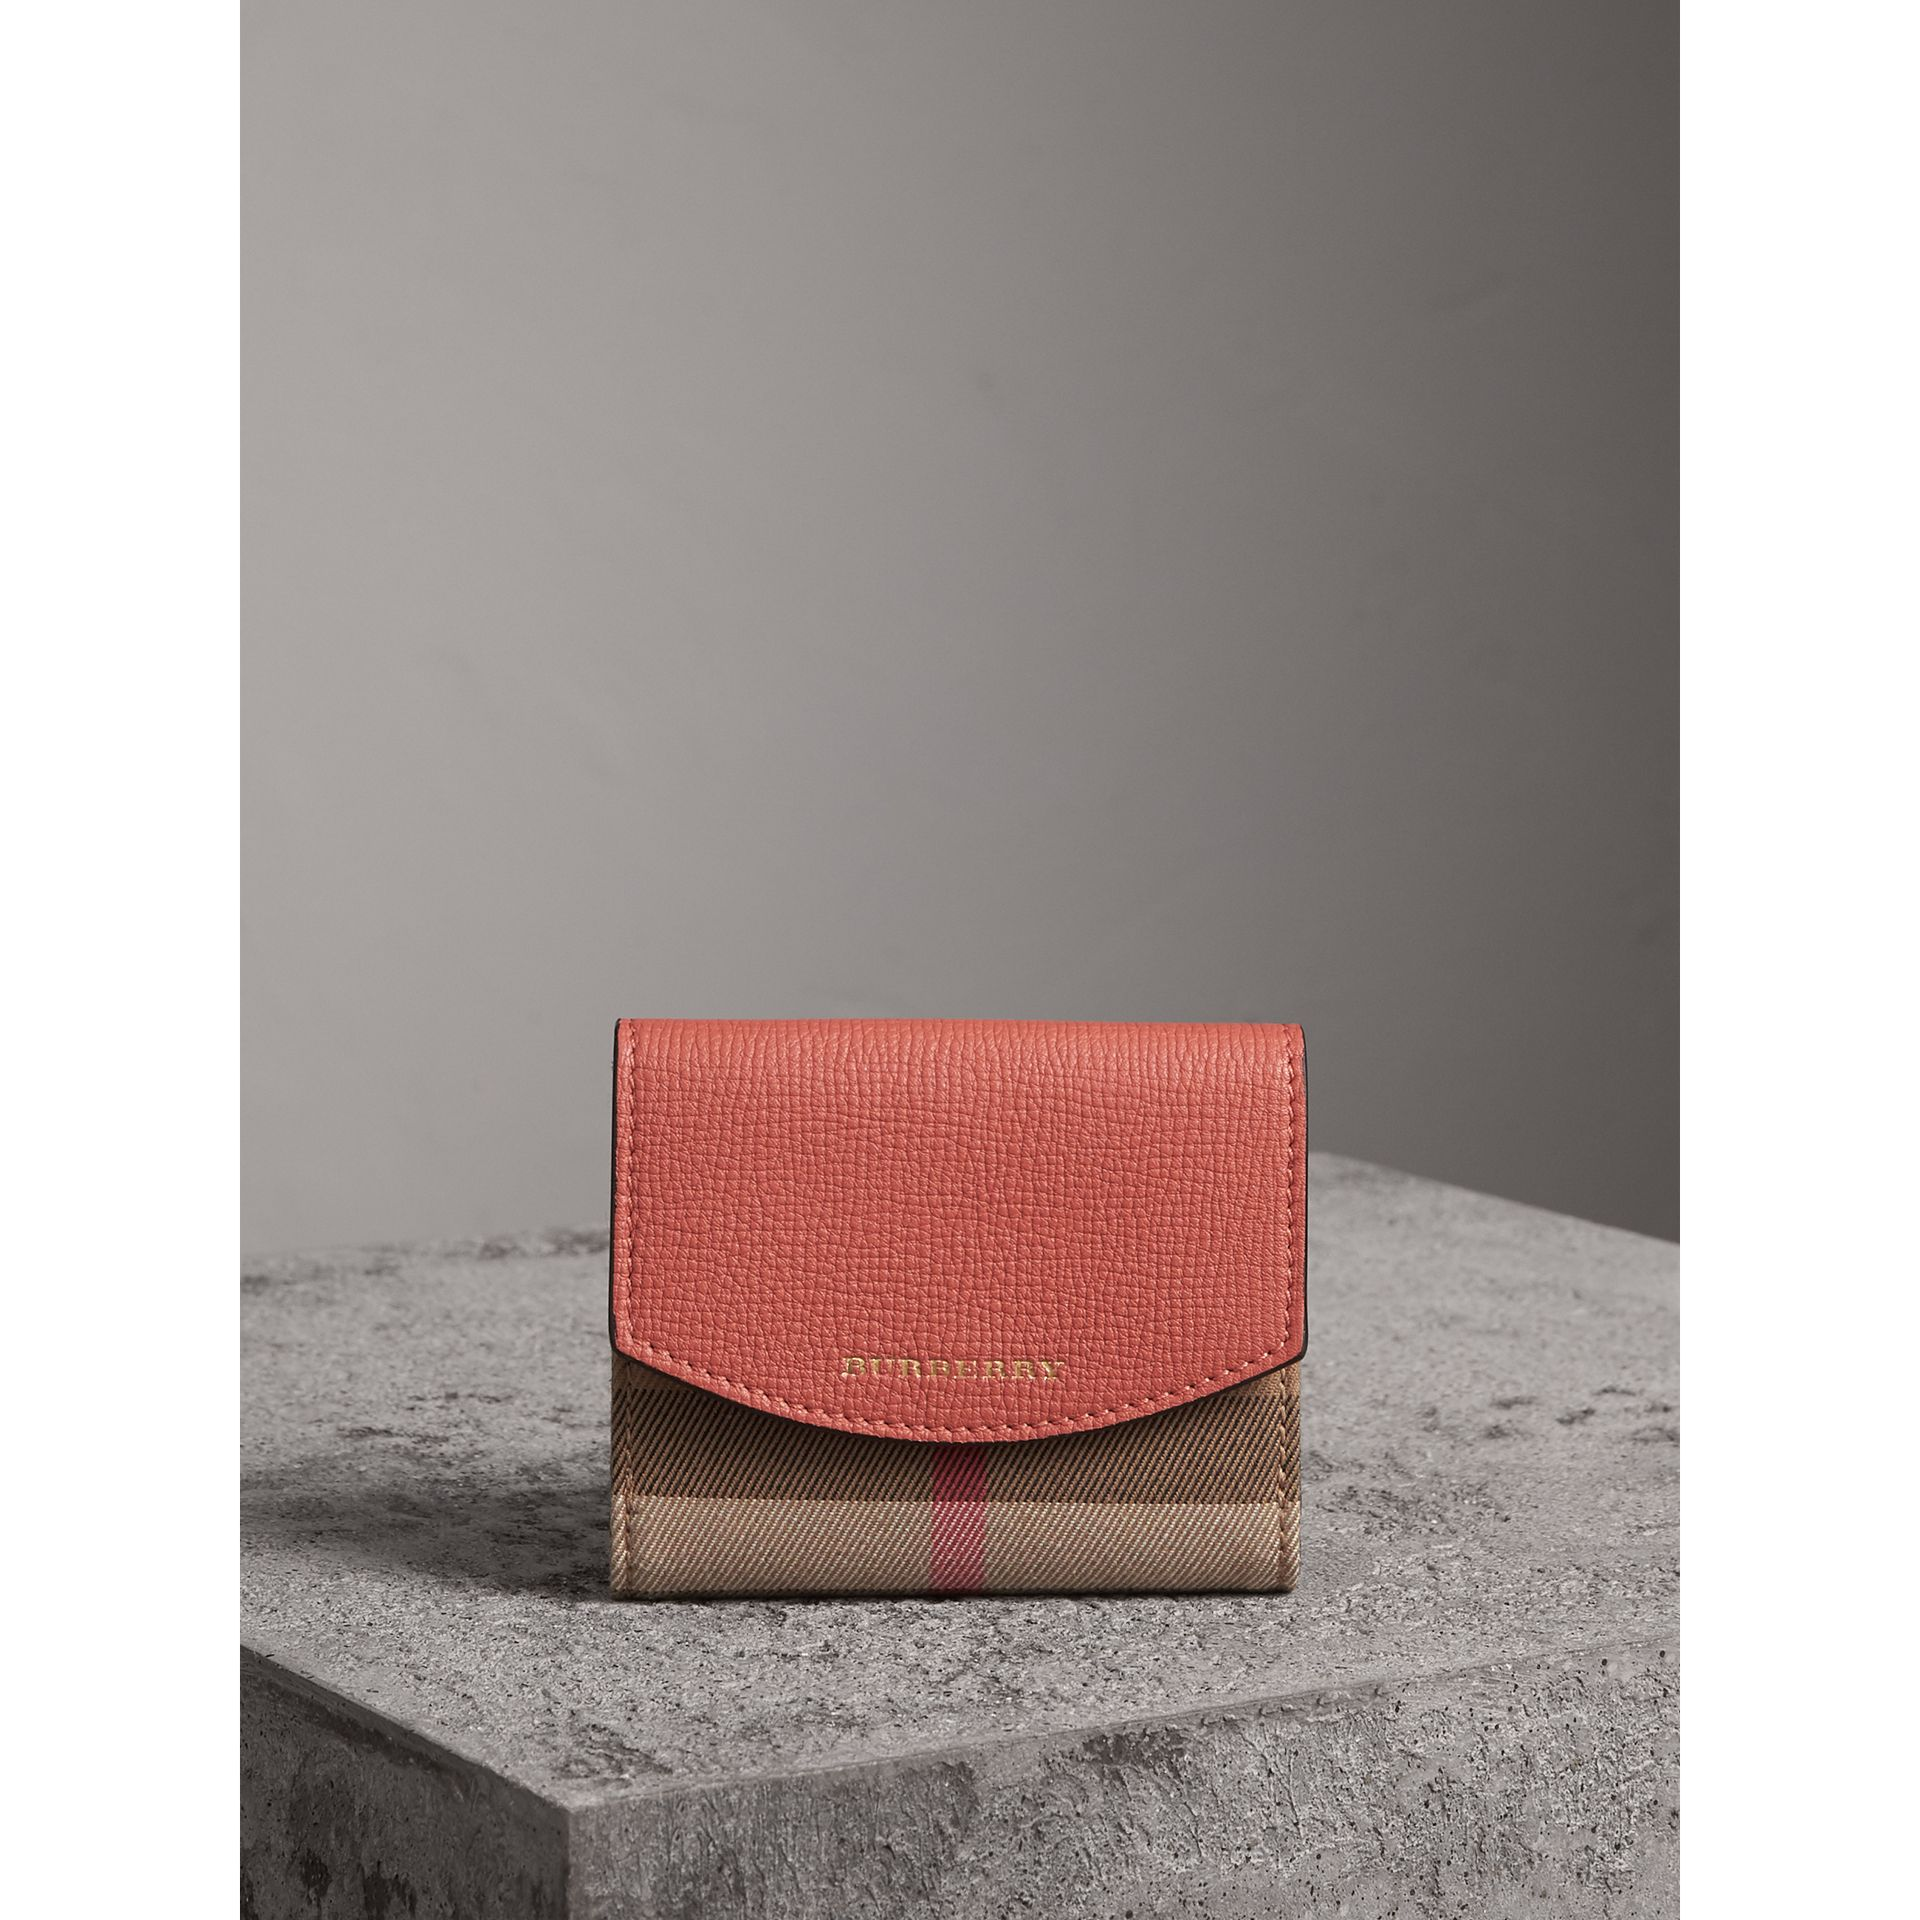 House Check and Leather Wallet in Cinnamon Red - Women | Burberry Hong Kong - gallery image 4